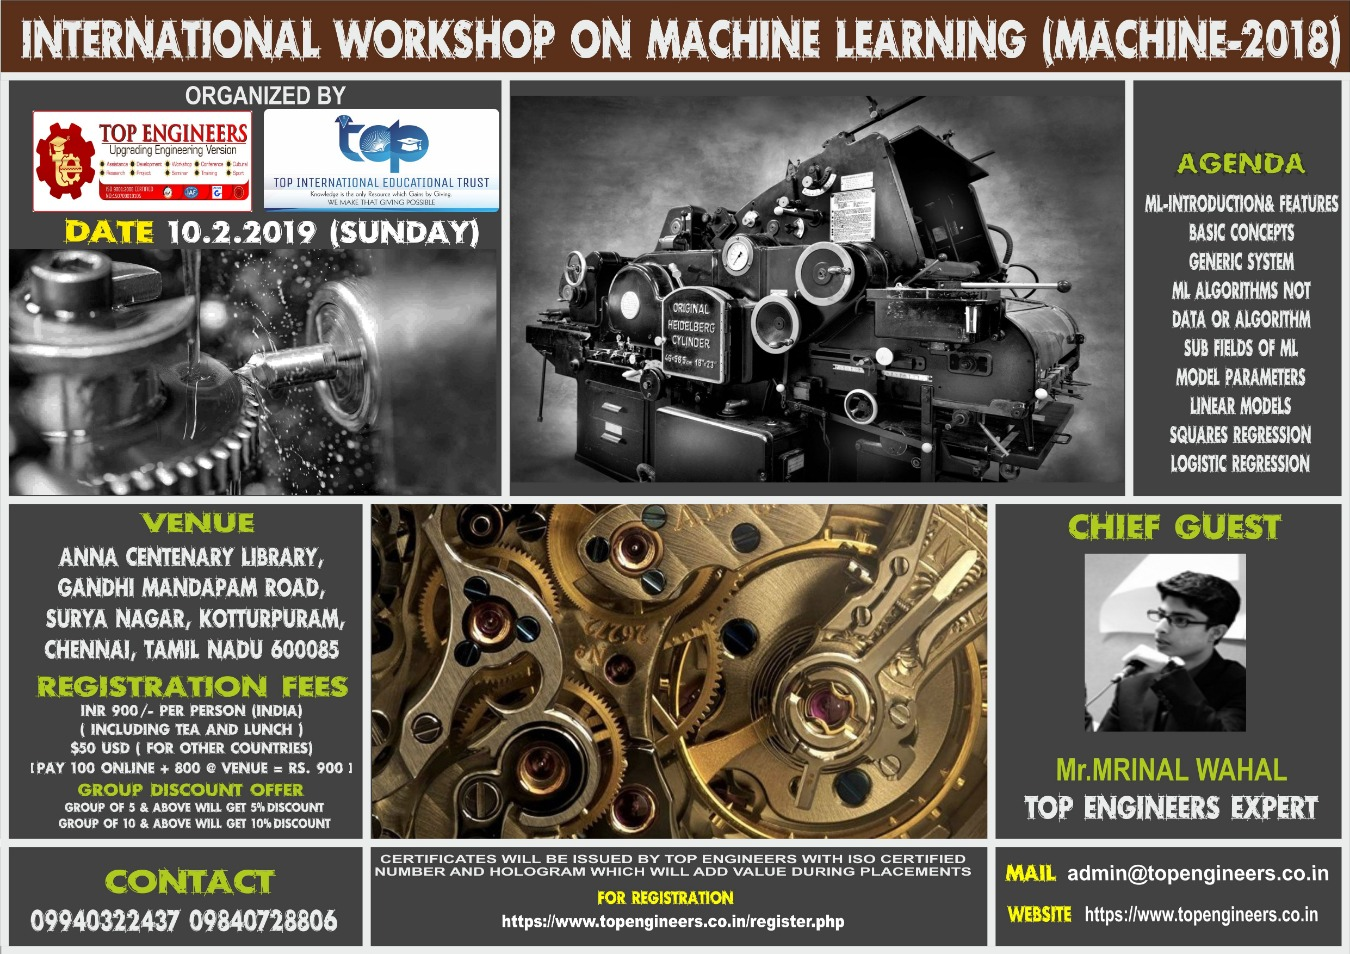 WORKSHOP ON MACHINE LEARNING Tickets by TOP ENGINEERS, 10 Feb, 2019,  Chennai Event